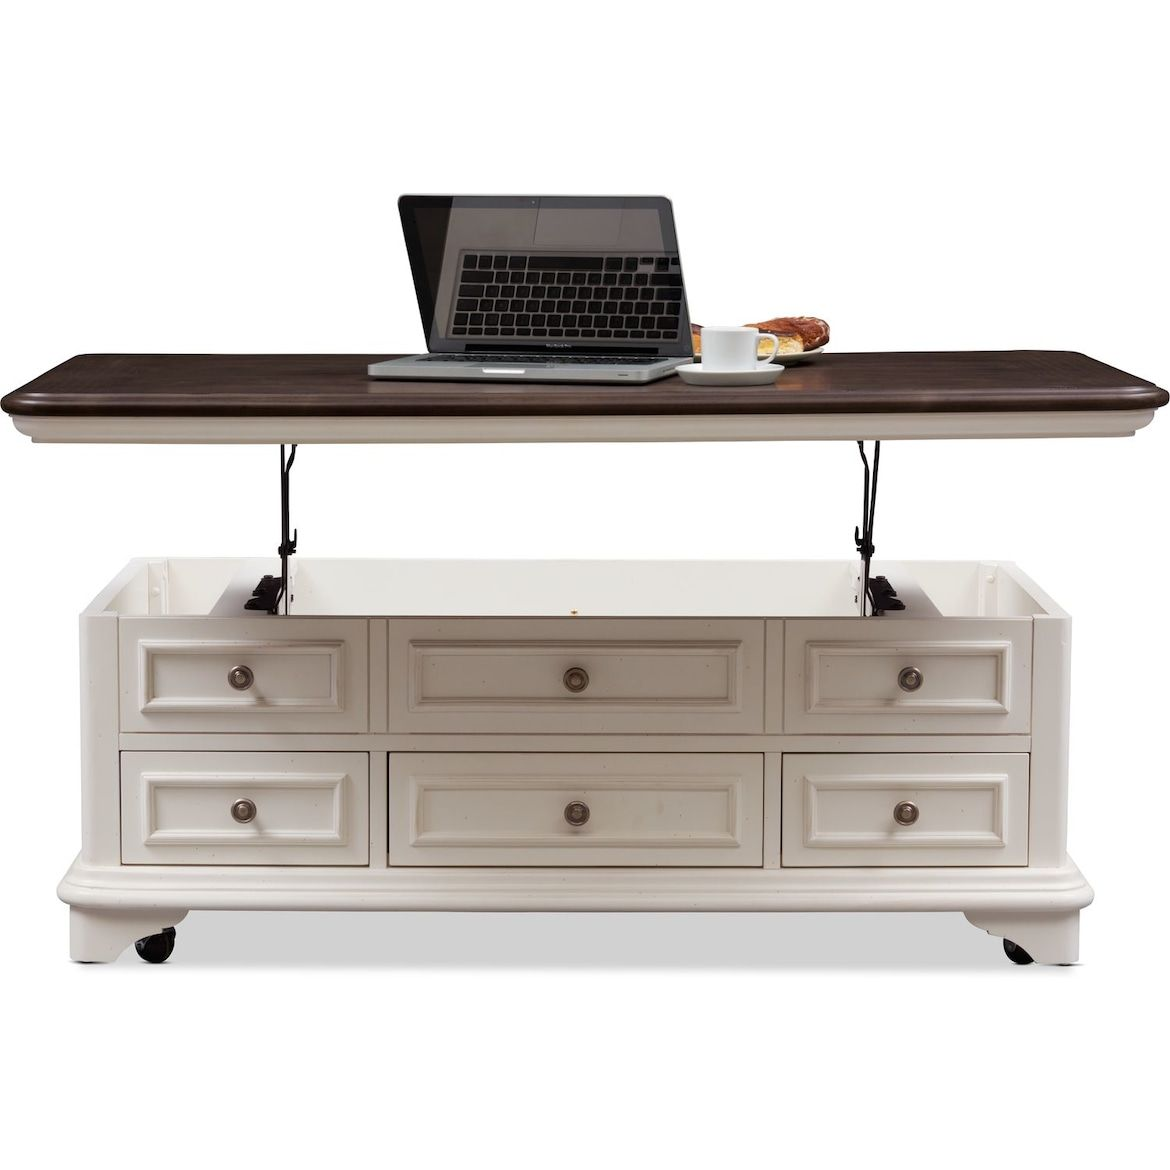 Charleston Lift Top Coffee Table American Signature Furniture Lift Top Coffee Table Coffee Table Coffee Table Stand [ 1170 x 1170 Pixel ]